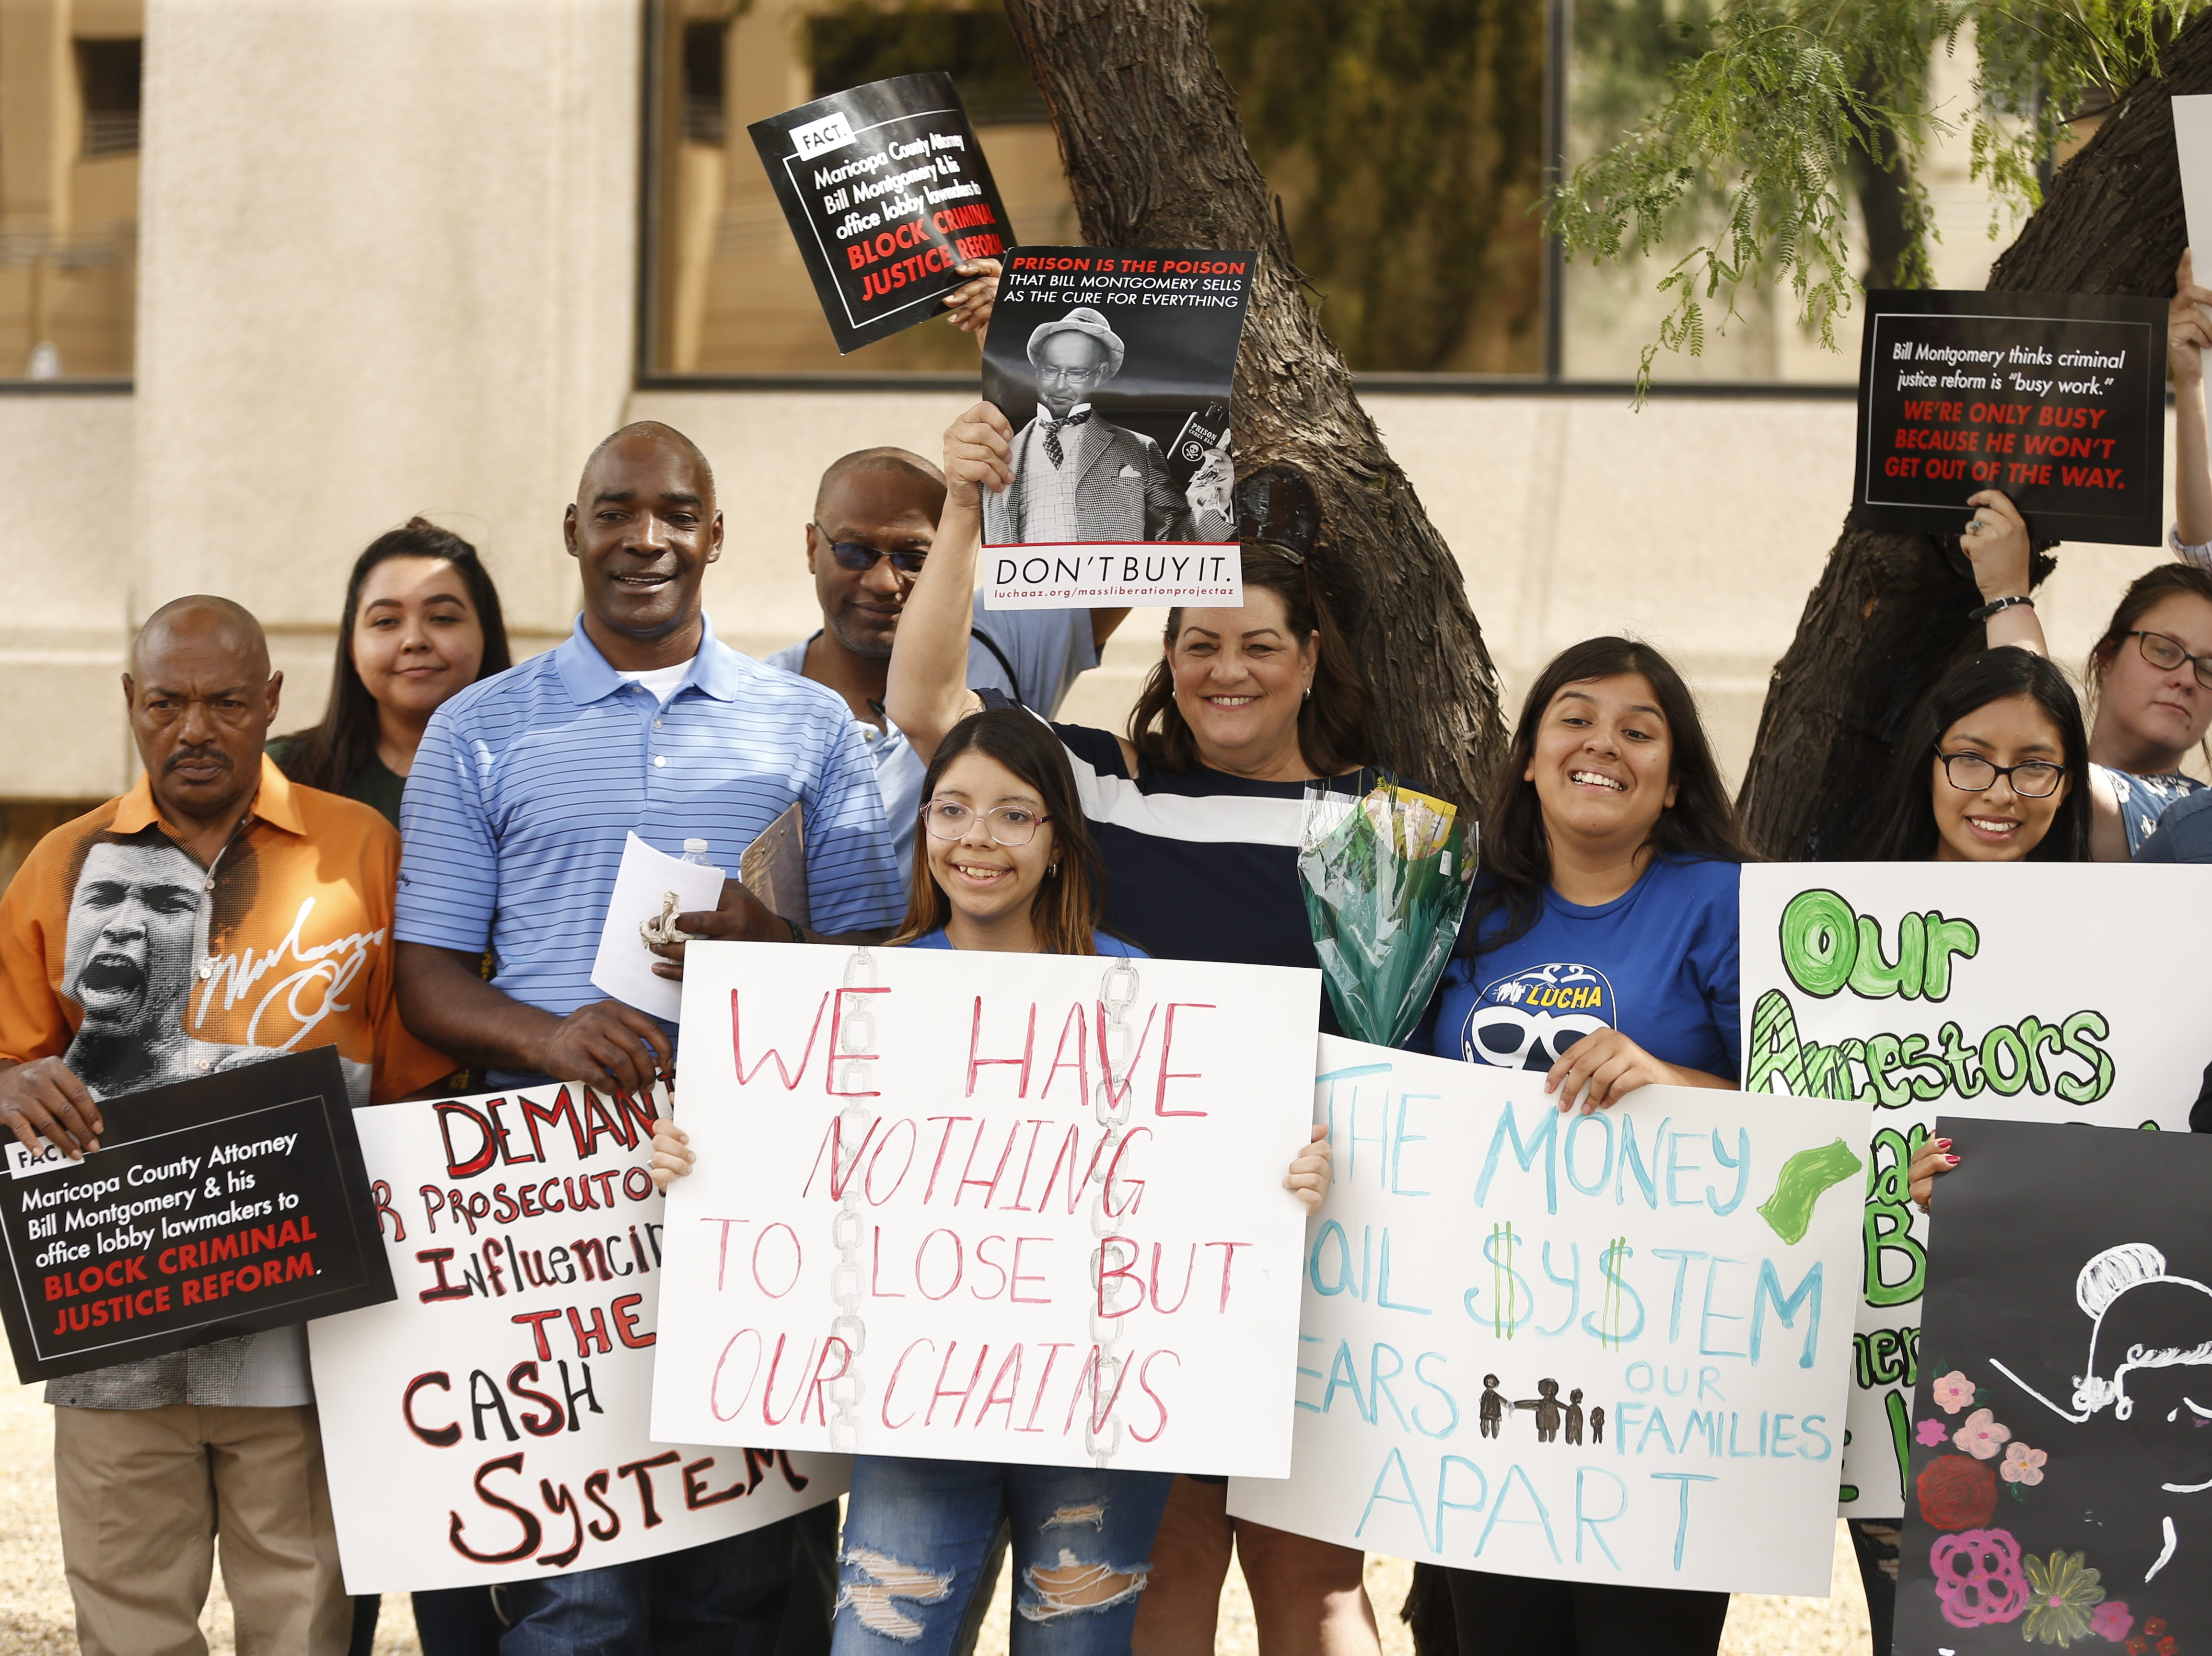 LUCHA members hold signs during a protest against cash bail at the Maricopa County Attorney's office in Phoenix on May 9, 2019.